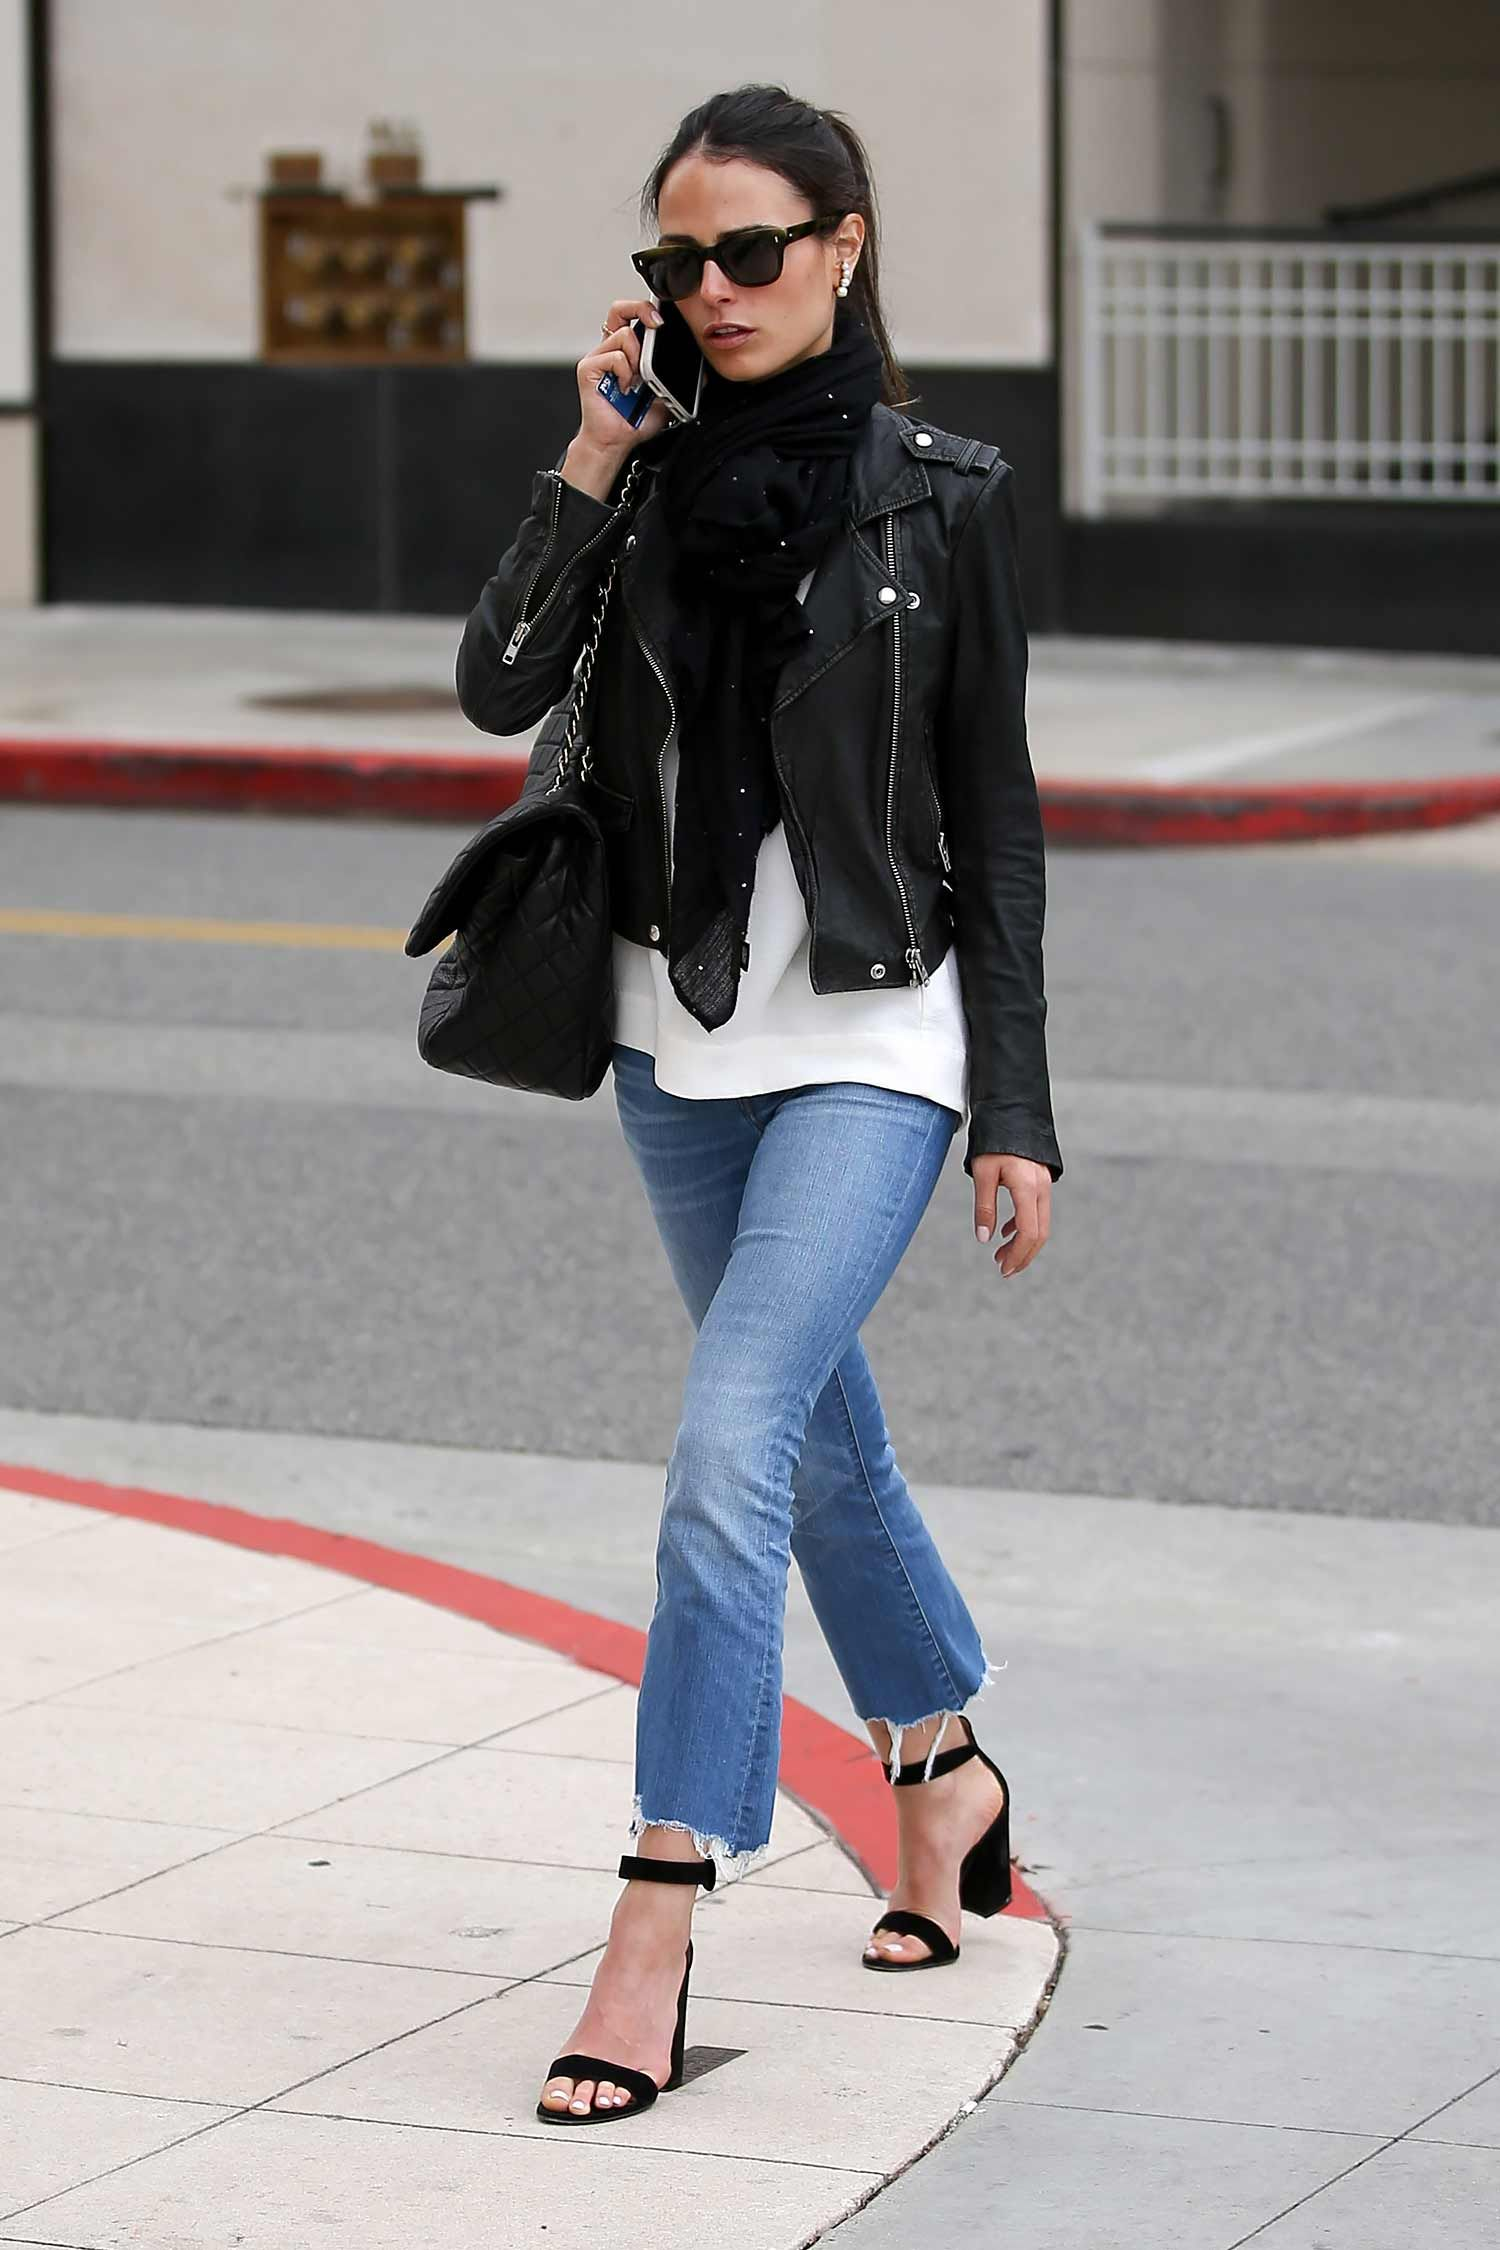 afac400c Jordana Brewster Wears Cropped Bootcut Jeans | The Jeans Blog ...